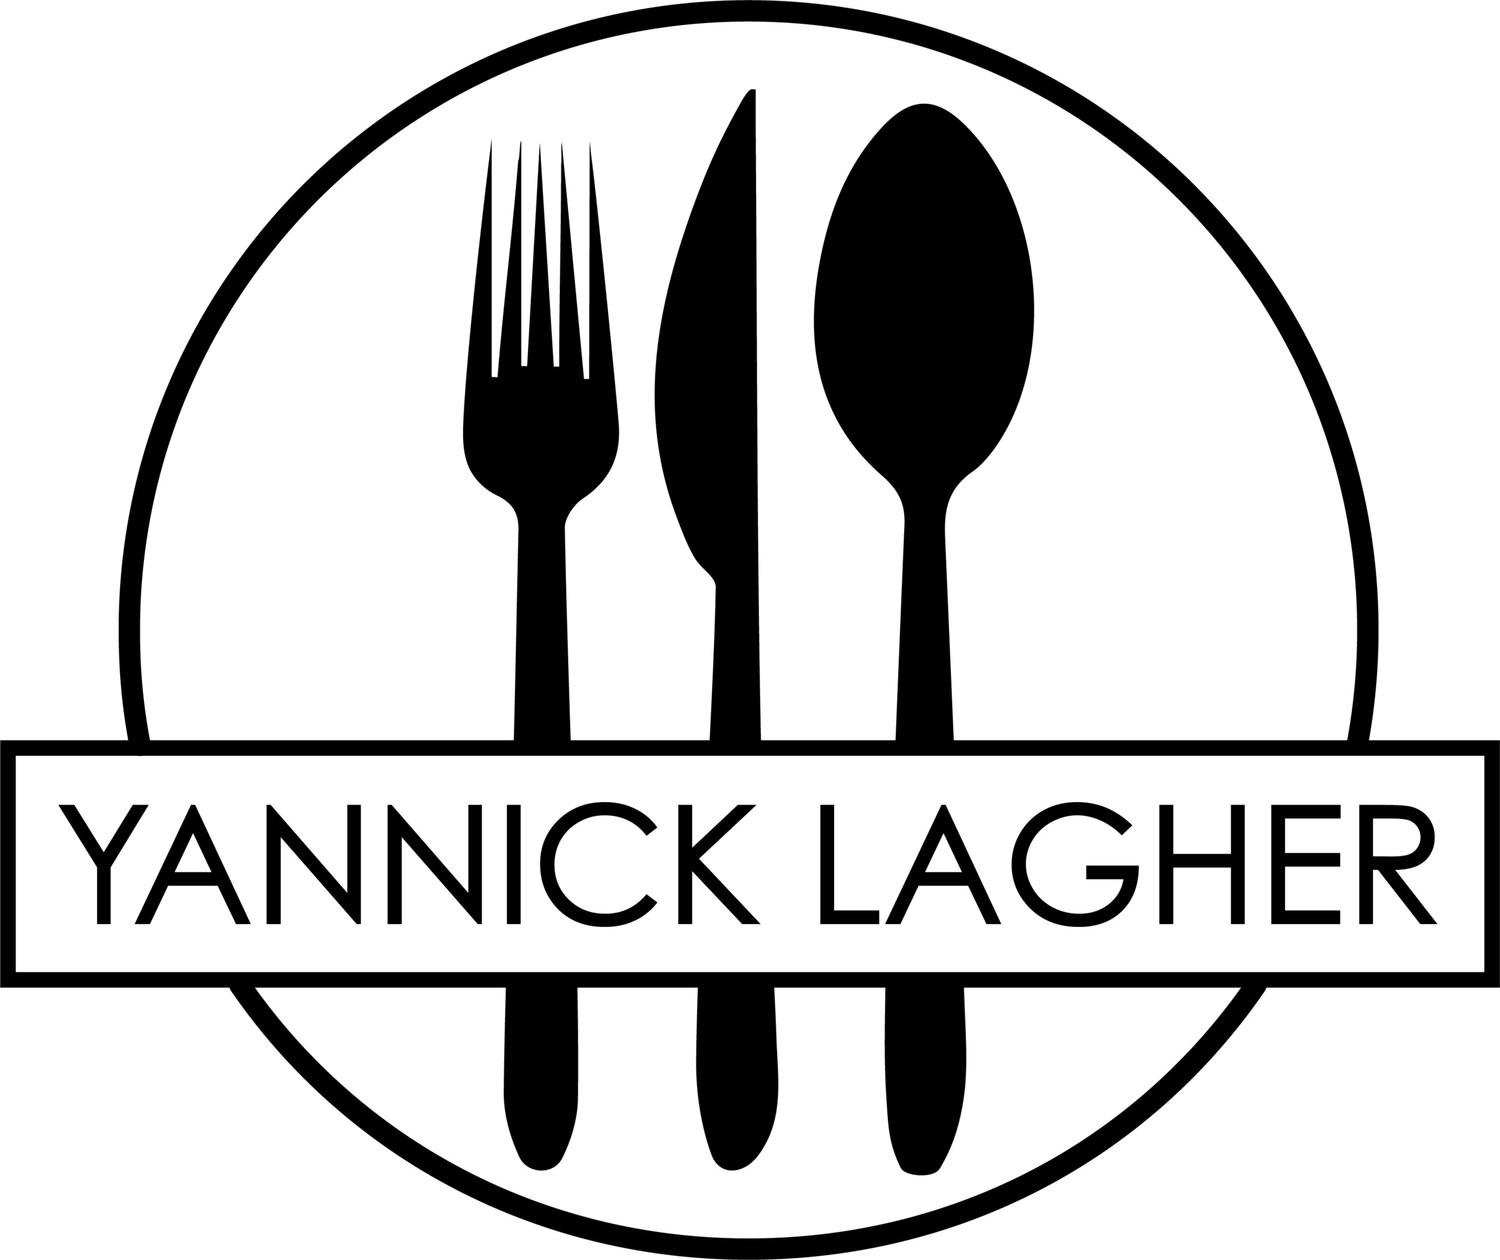 Yannick Lagher - Food photographer & Chef